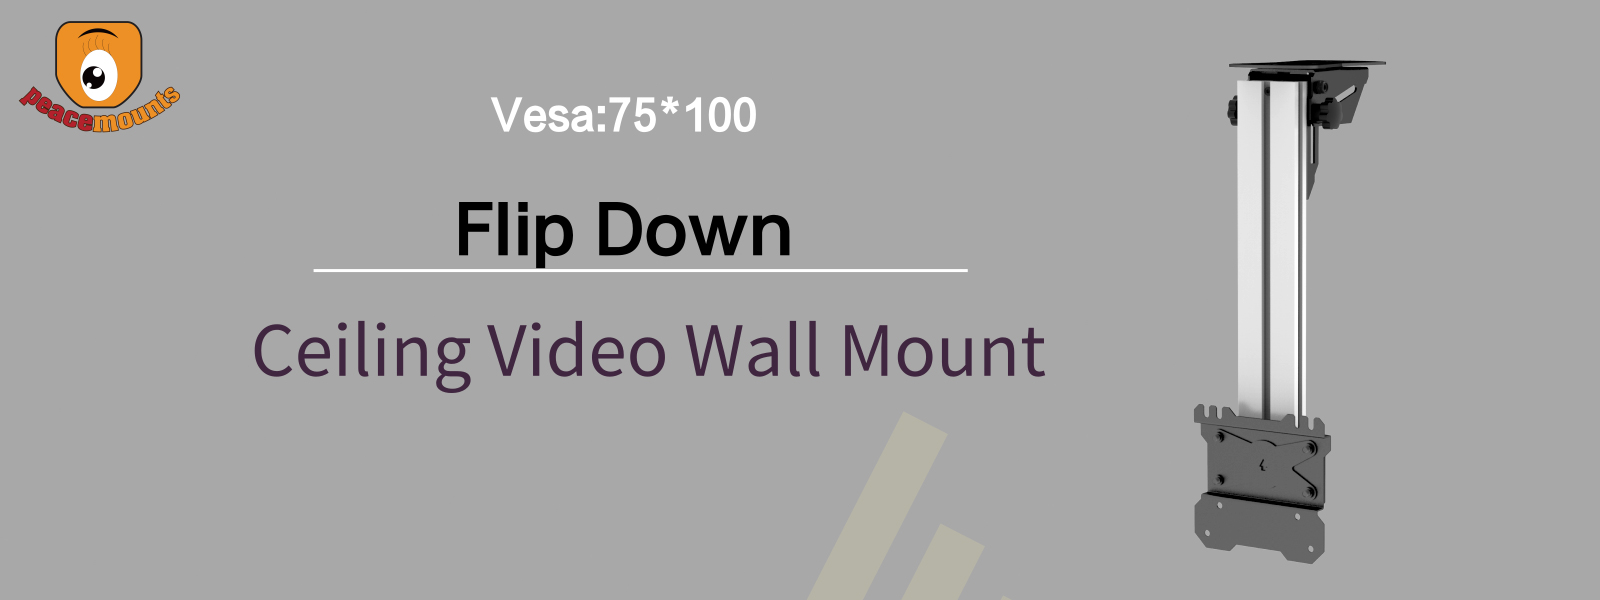 Ceiling-Video-Wall-Mount2019.05